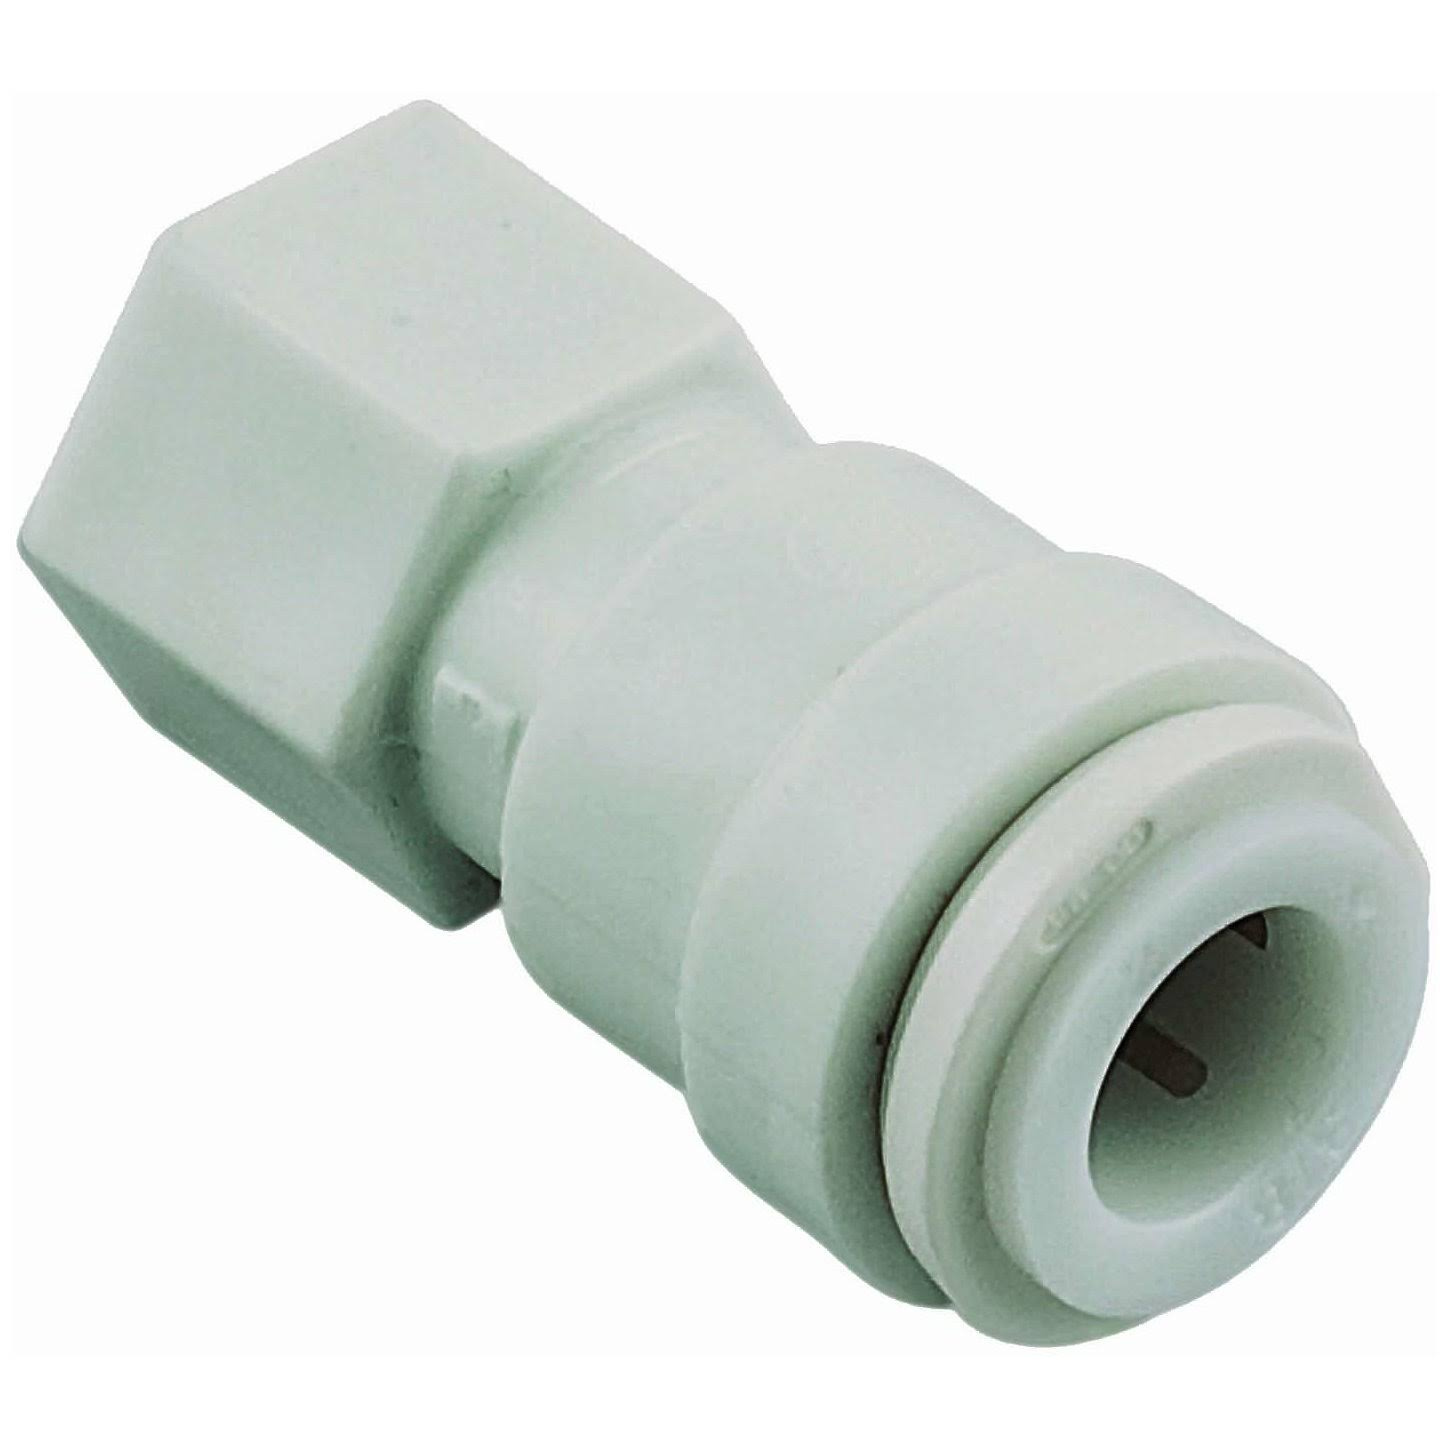 "Watts PL-3060 Push Female Adapter - 1/4"" OD x 1/4"" FPT"